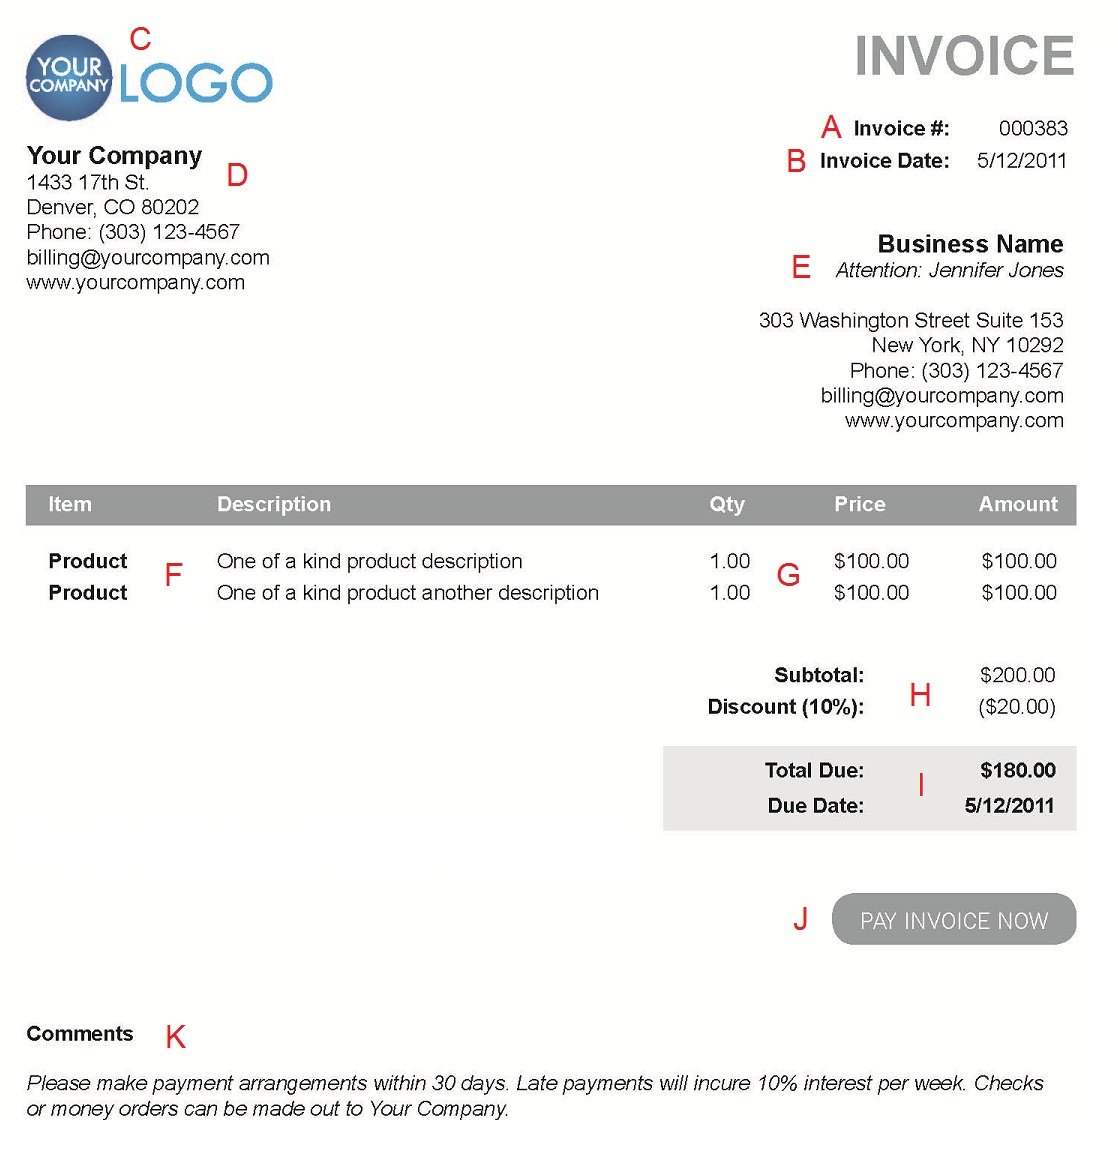 Reliefworkersus  Unique The  Different Sections Of An Electronic Payment Invoice With Engaging A  With Alluring Invoice Factoring Rates Also Invoice Order In Addition Open Source Invoice And Edmunds Invoice Price New Car As Well As Invoice Letter Template Additionally Johnson Controls Invoicing From Paysimplecom With Reliefworkersus  Engaging The  Different Sections Of An Electronic Payment Invoice With Alluring A  And Unique Invoice Factoring Rates Also Invoice Order In Addition Open Source Invoice From Paysimplecom